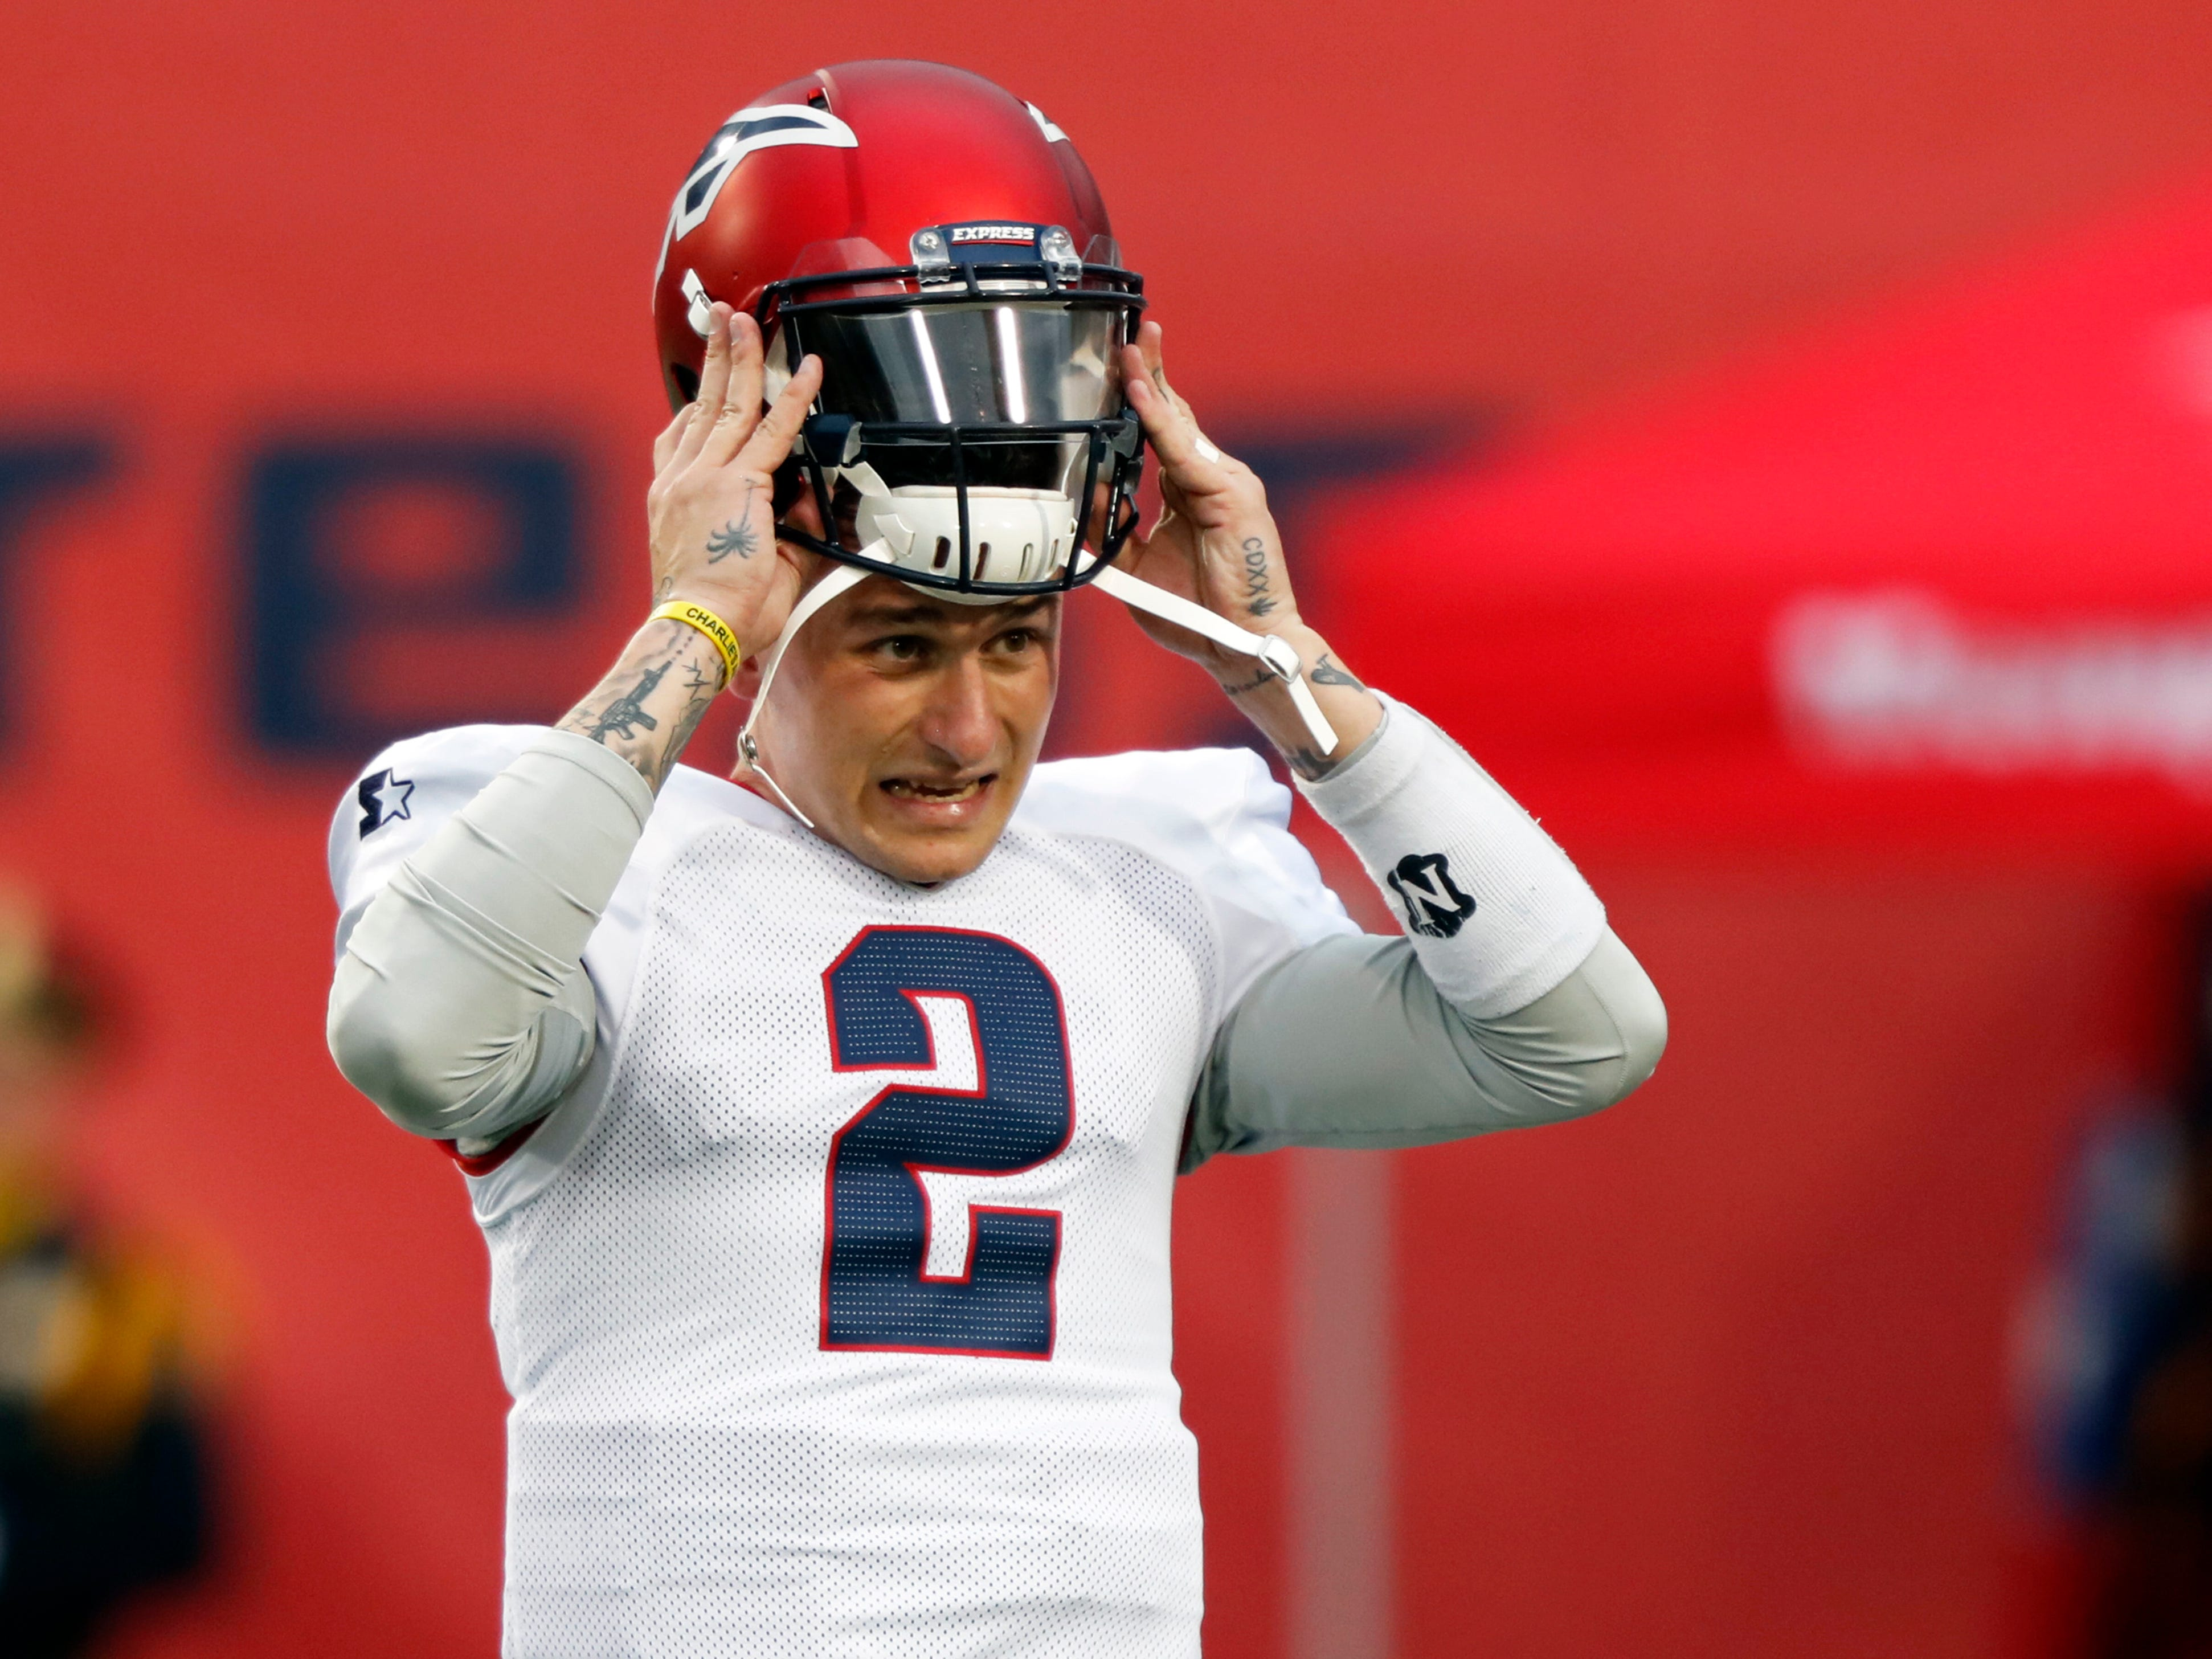 Memphis Express quarterback Johnny Manziel is seen during warms ups before an AAF football game against the Birmingham Iron, Sunday, March 24, 2019, at Liberty Bowl Memorial Stadium in Memphis.